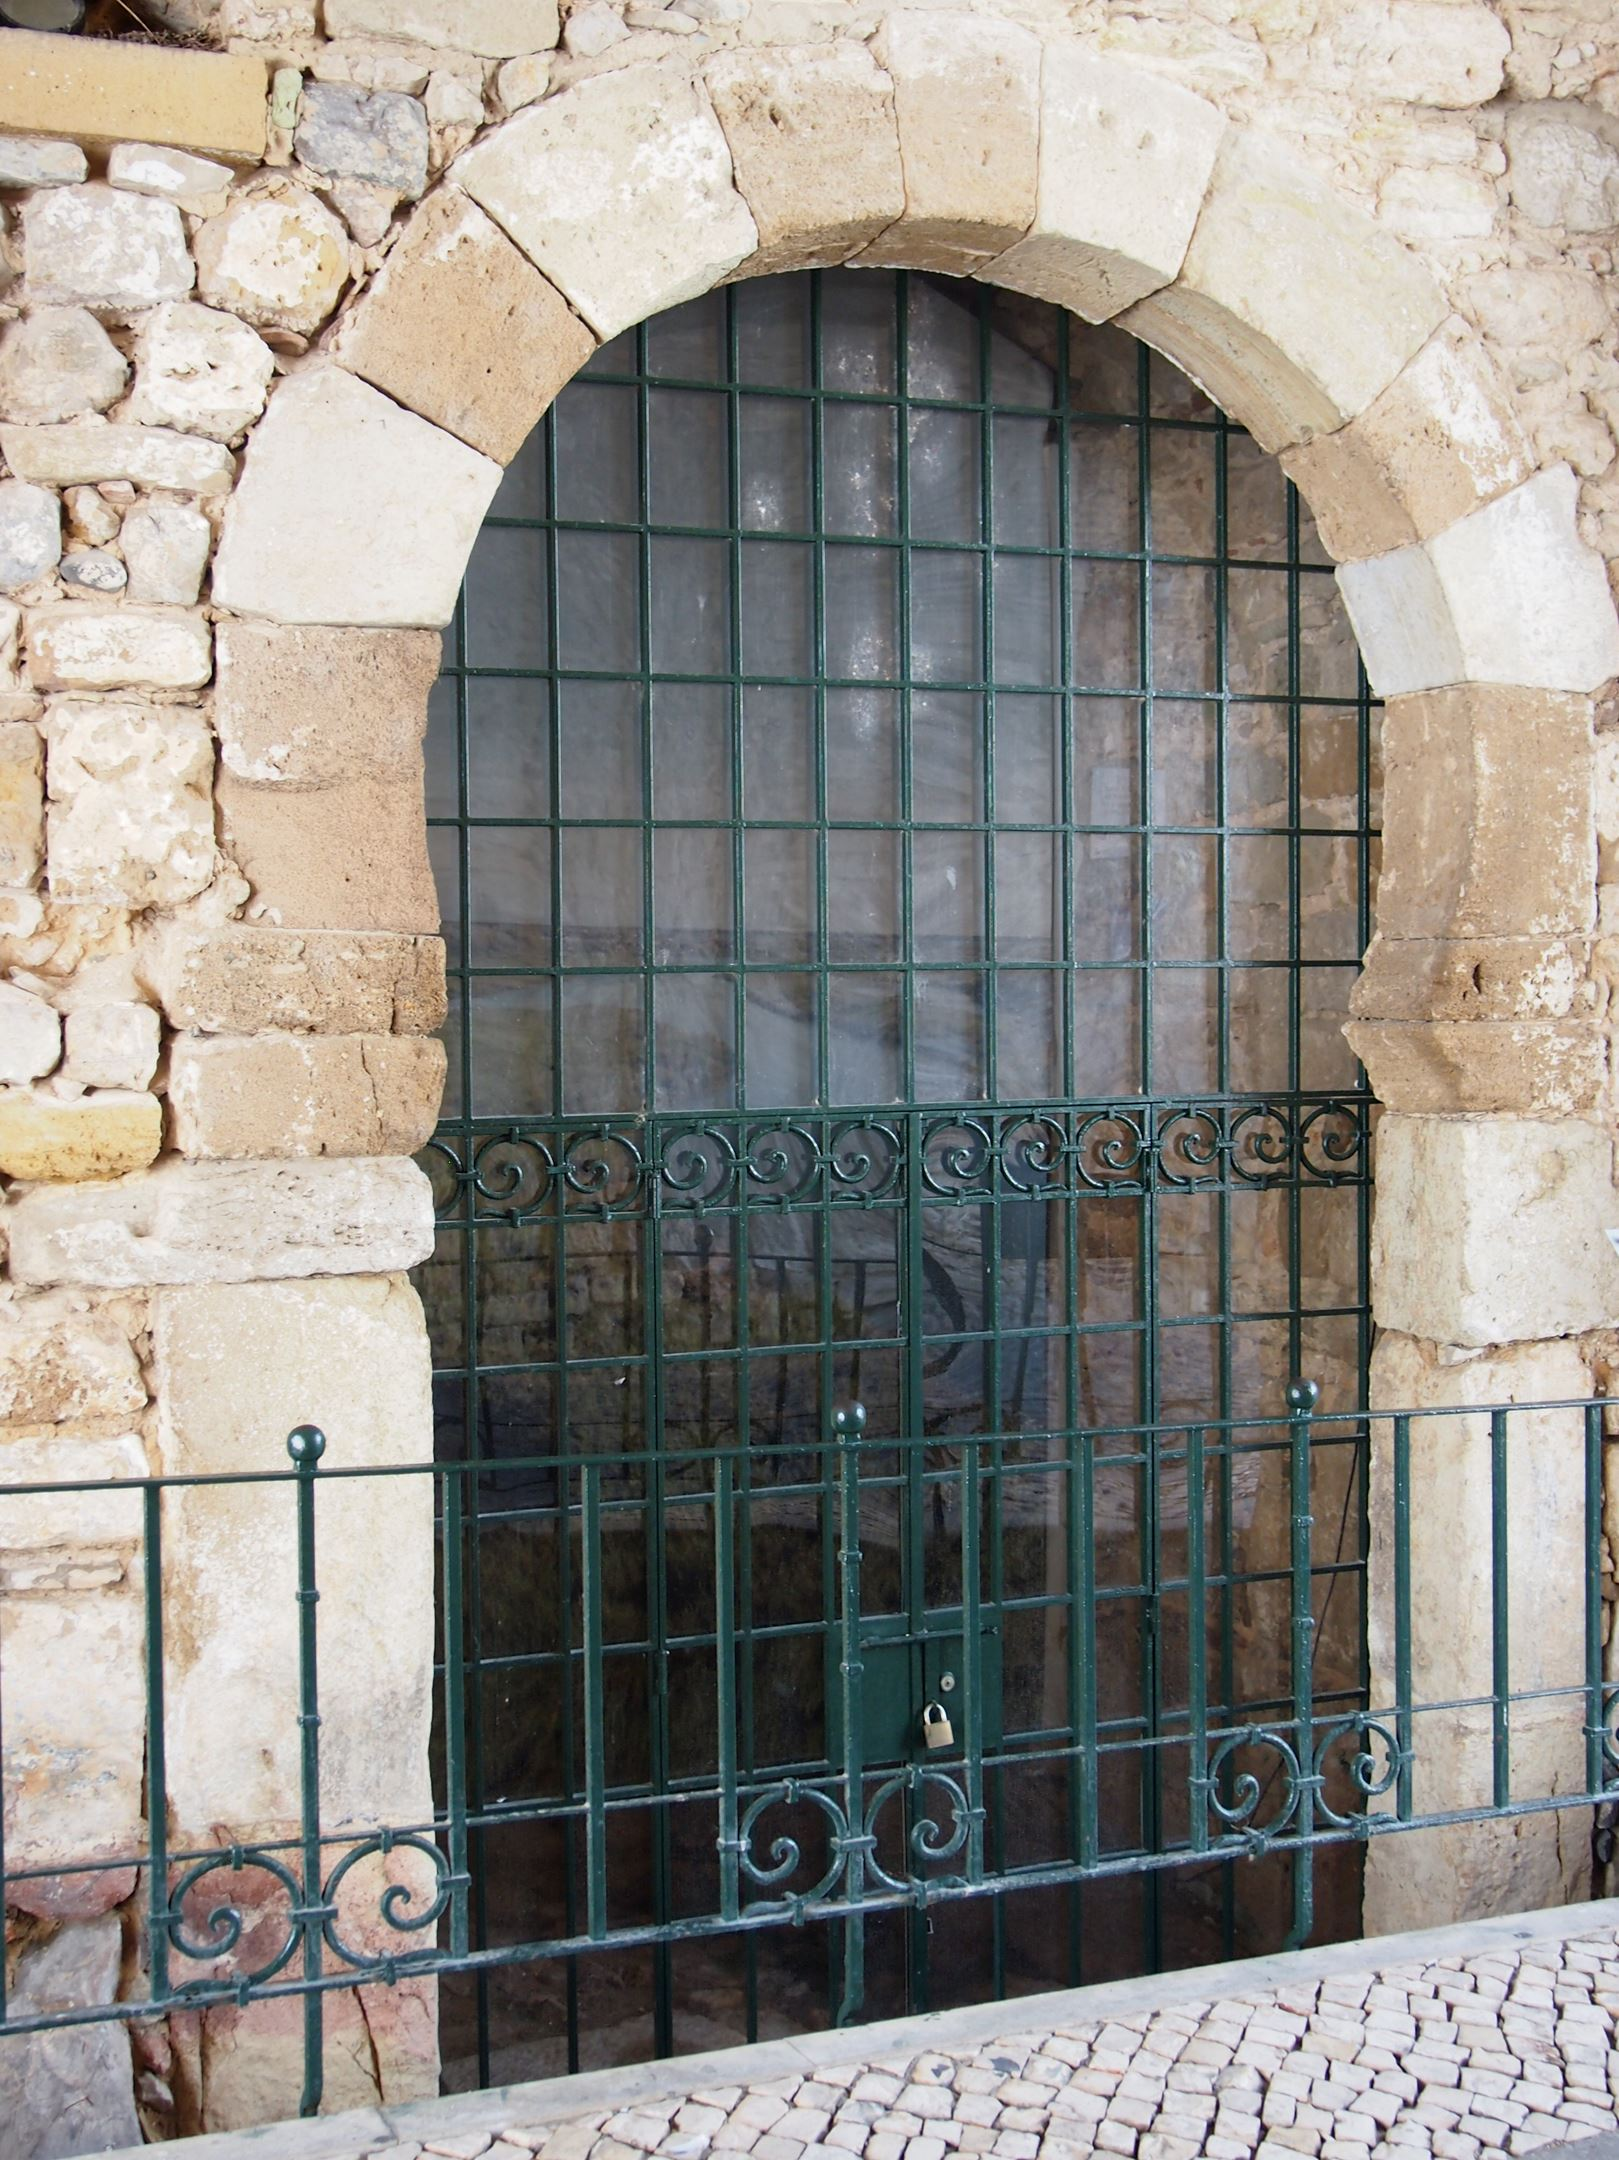 Original entrance to the old town, Faro